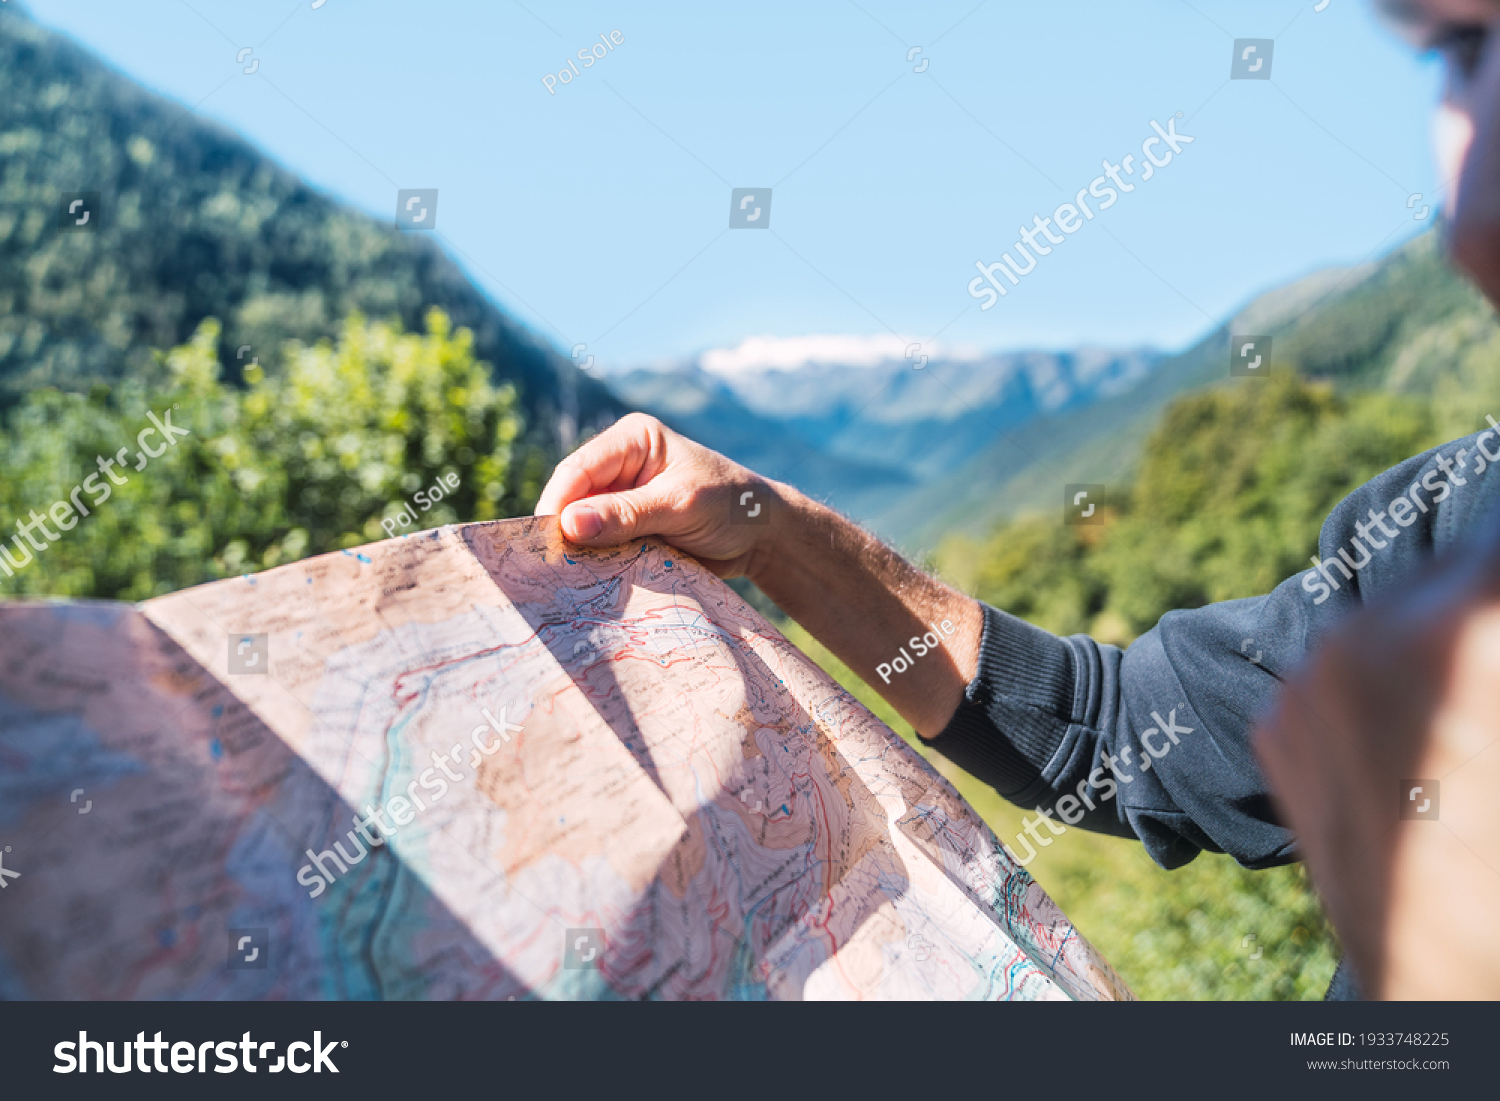 Anonymous man looking the travel route on a map in the mountain. Routes, excursions and mountain trails through nature in summer. Concept of exploring and live adventures traveling in nature. #1933748225